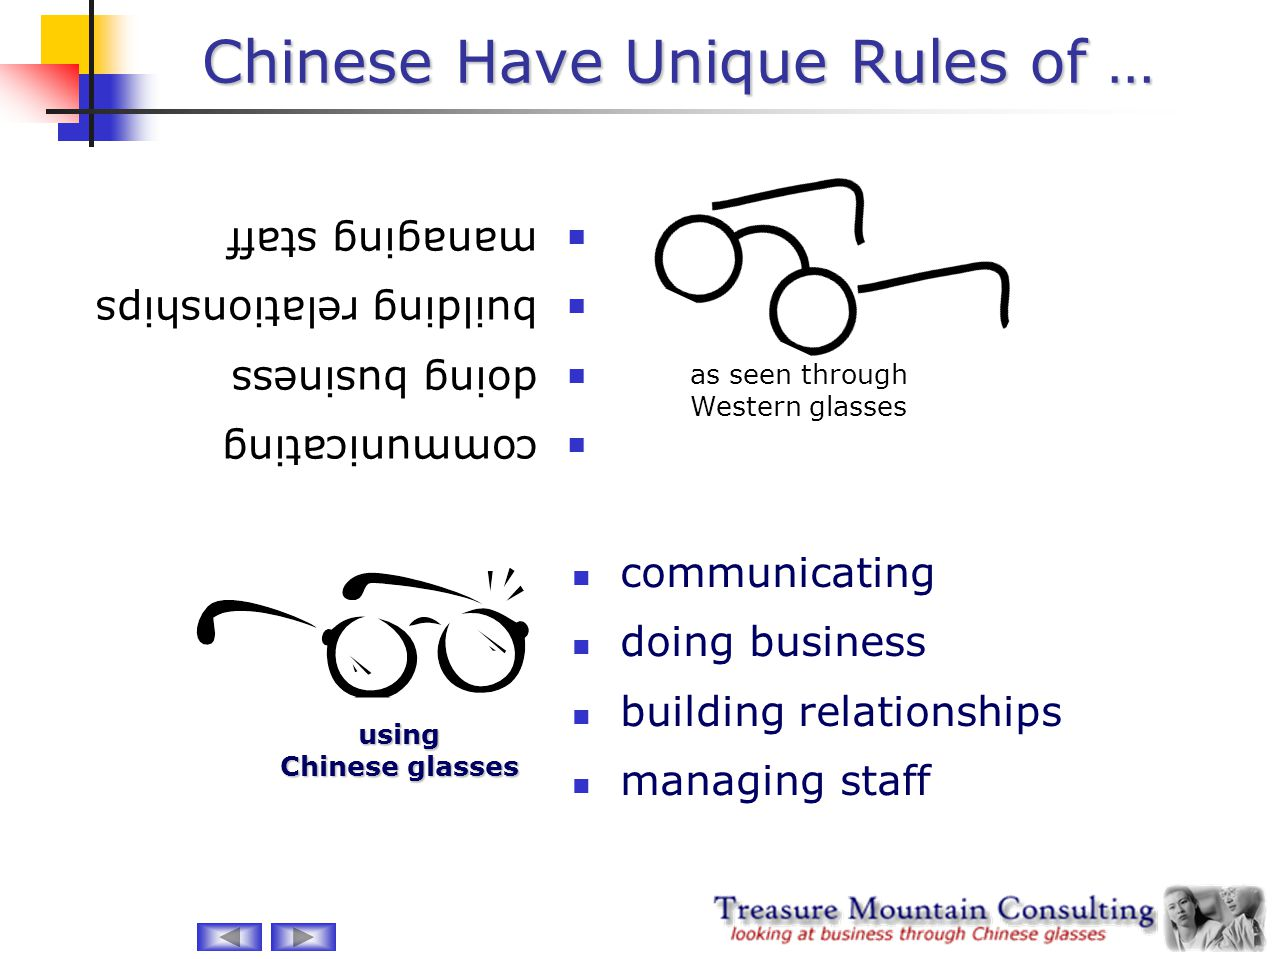 Chinese Have Unique Rules of … communicating doing business building relationships managing staff communicating doing business building relationships